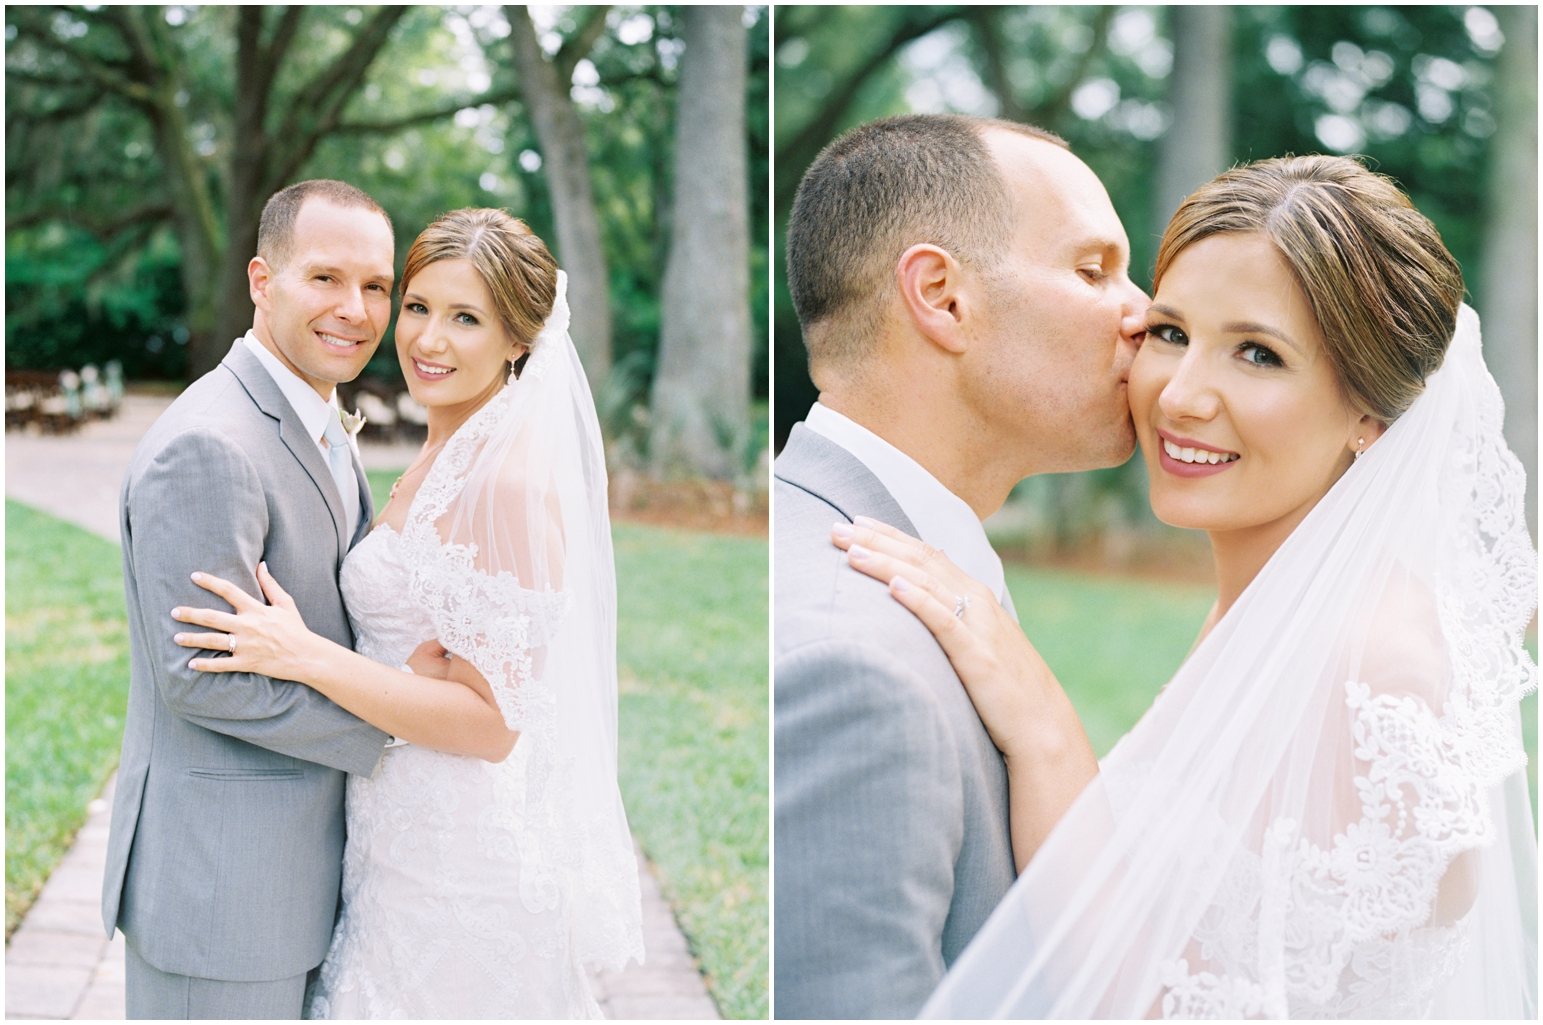 Lisa Silva Photography- Jacksonville, St Augustine, Fernandina Beach, Amelia Island, Ponte Vedra Beach, North East Florida Fine Art Film Photographer- Ashley and Shawn's wedding at bowing oaks plantation_0086.jpg